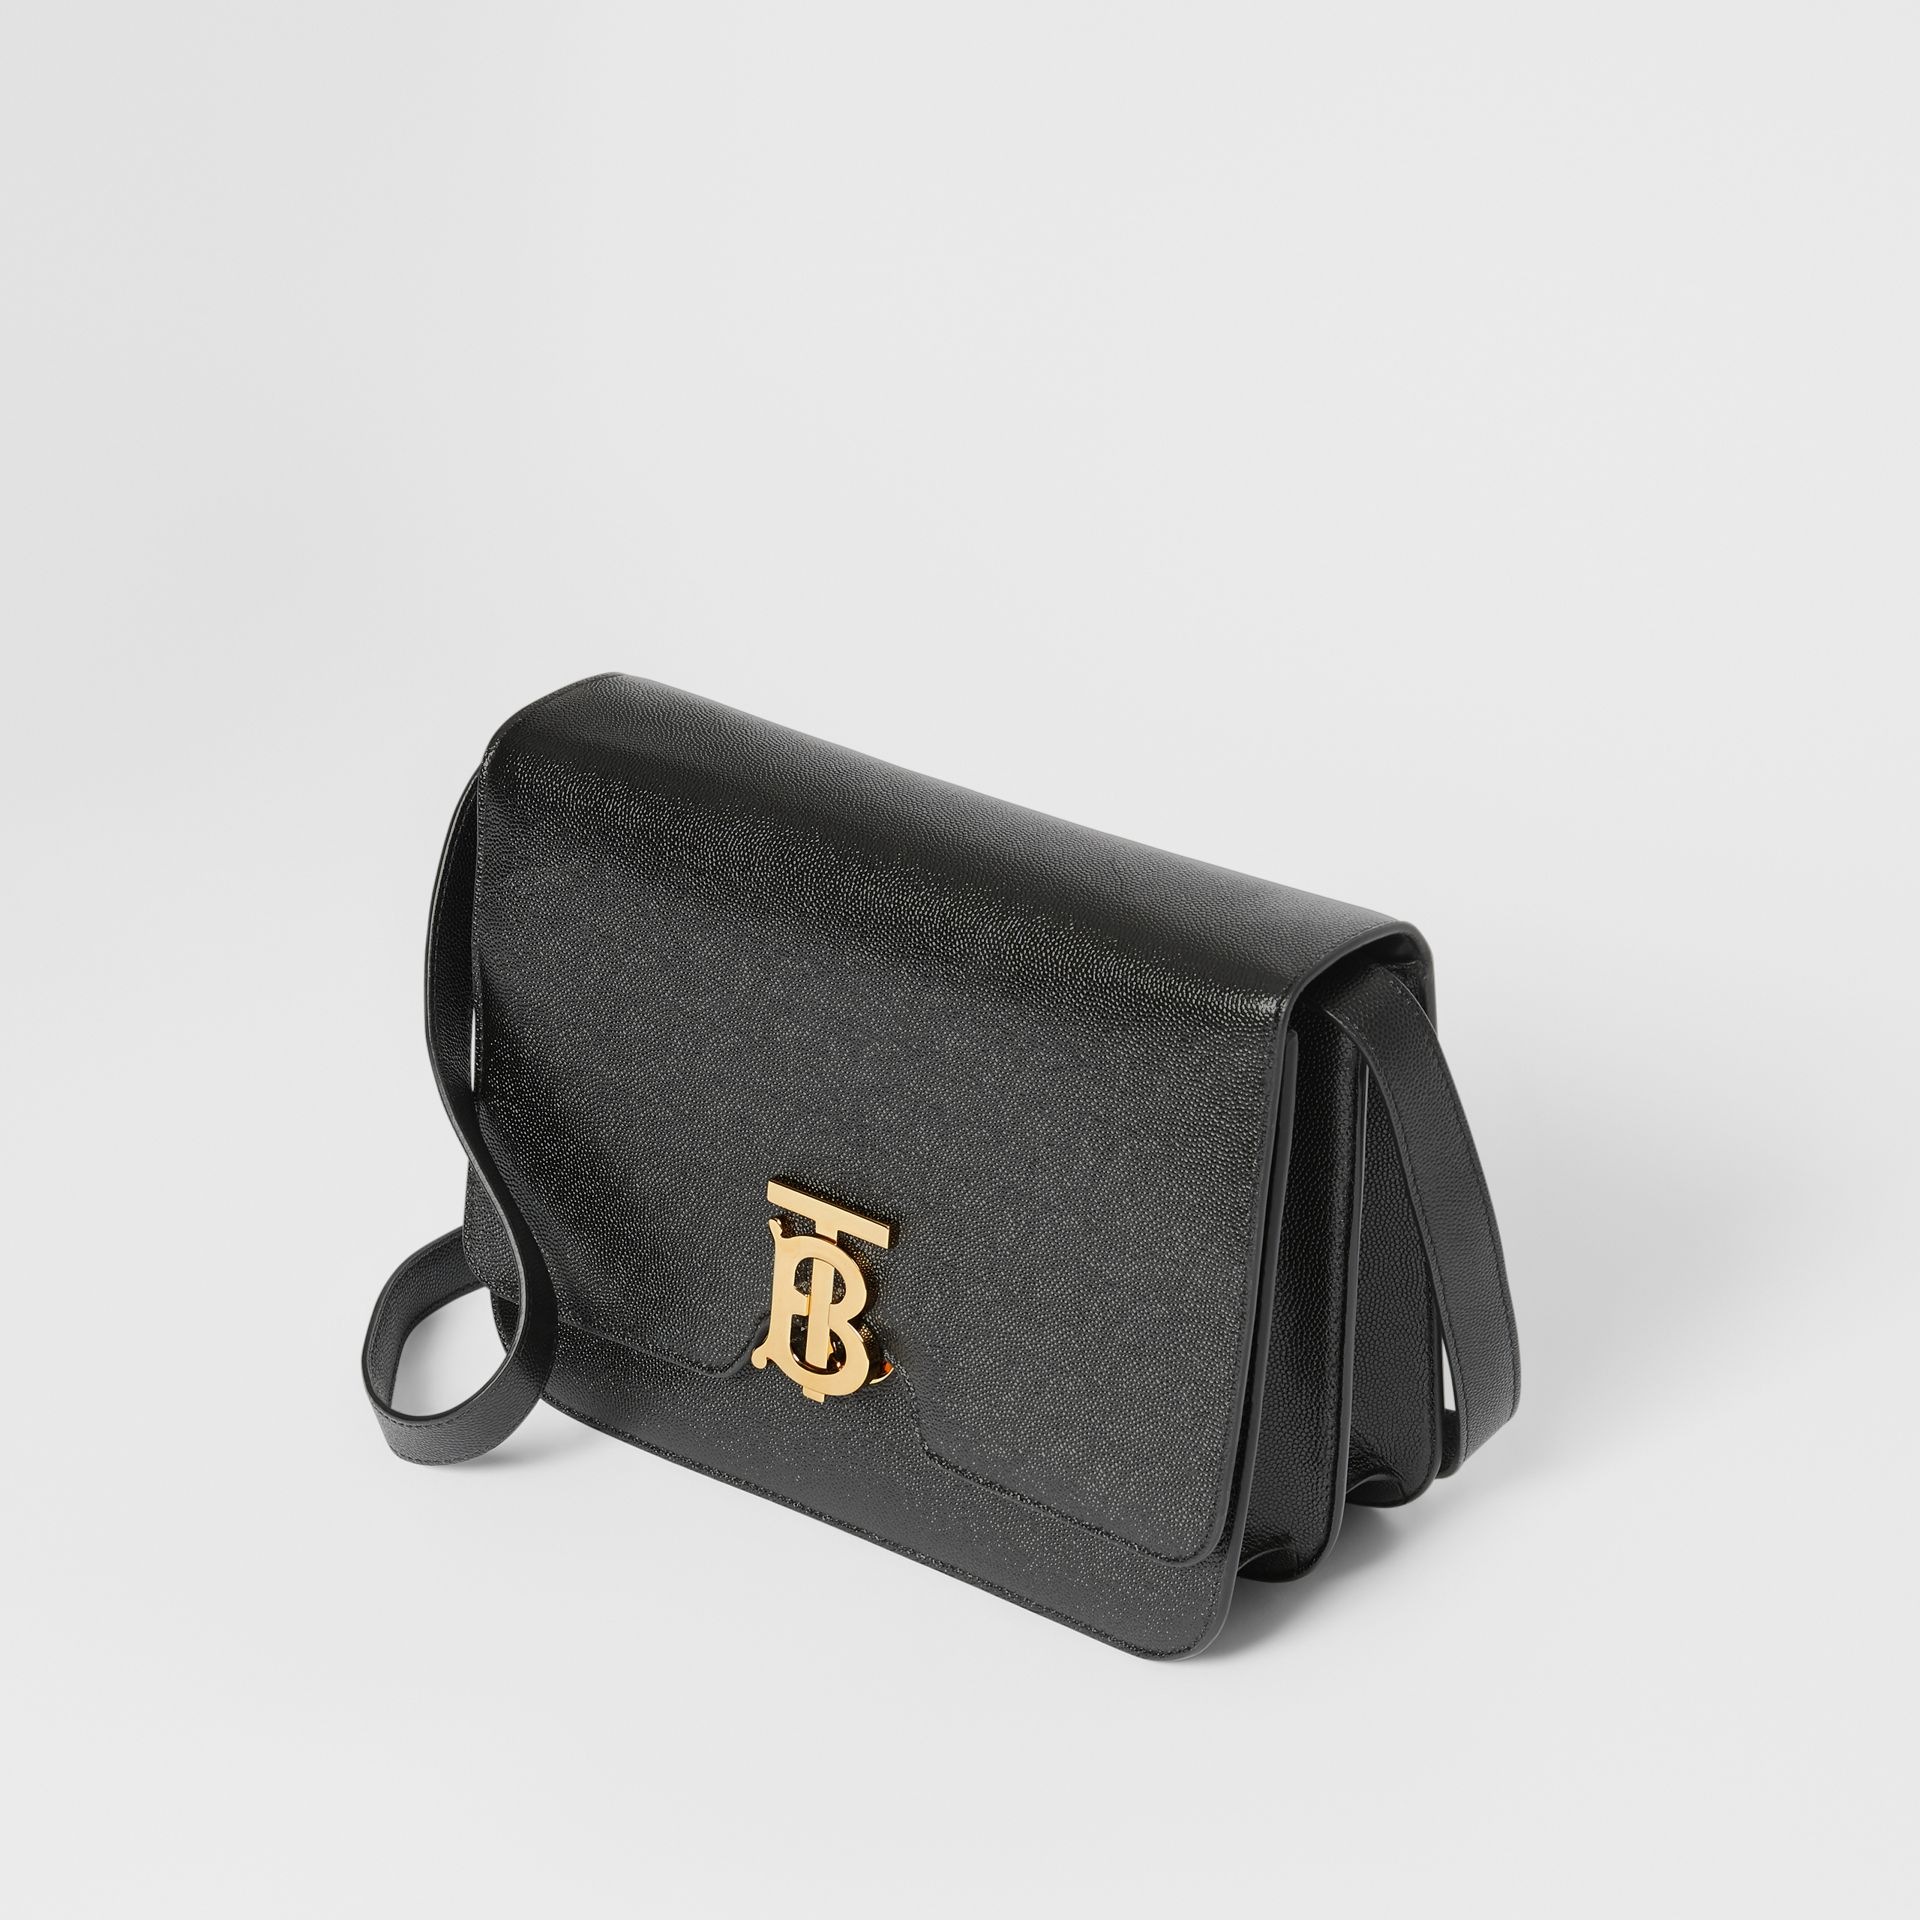 Medium Grainy Leather TB Bag in Black - Women | Burberry - gallery image 3